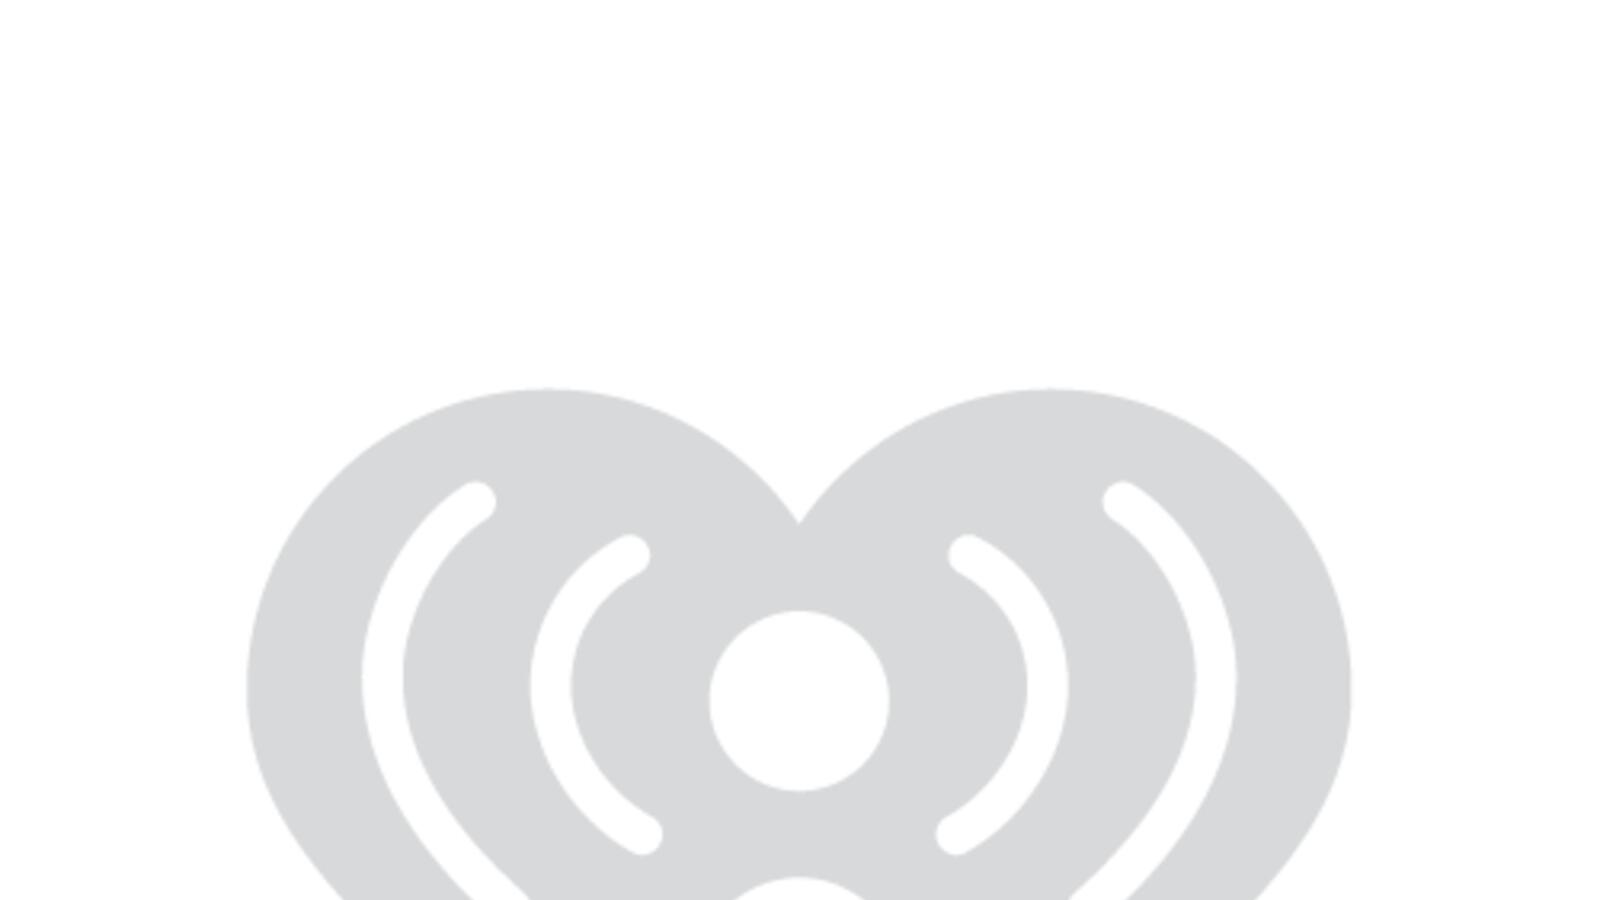 2021 Adopt a Duck to support Pat Kracker Breast Cancer Fund